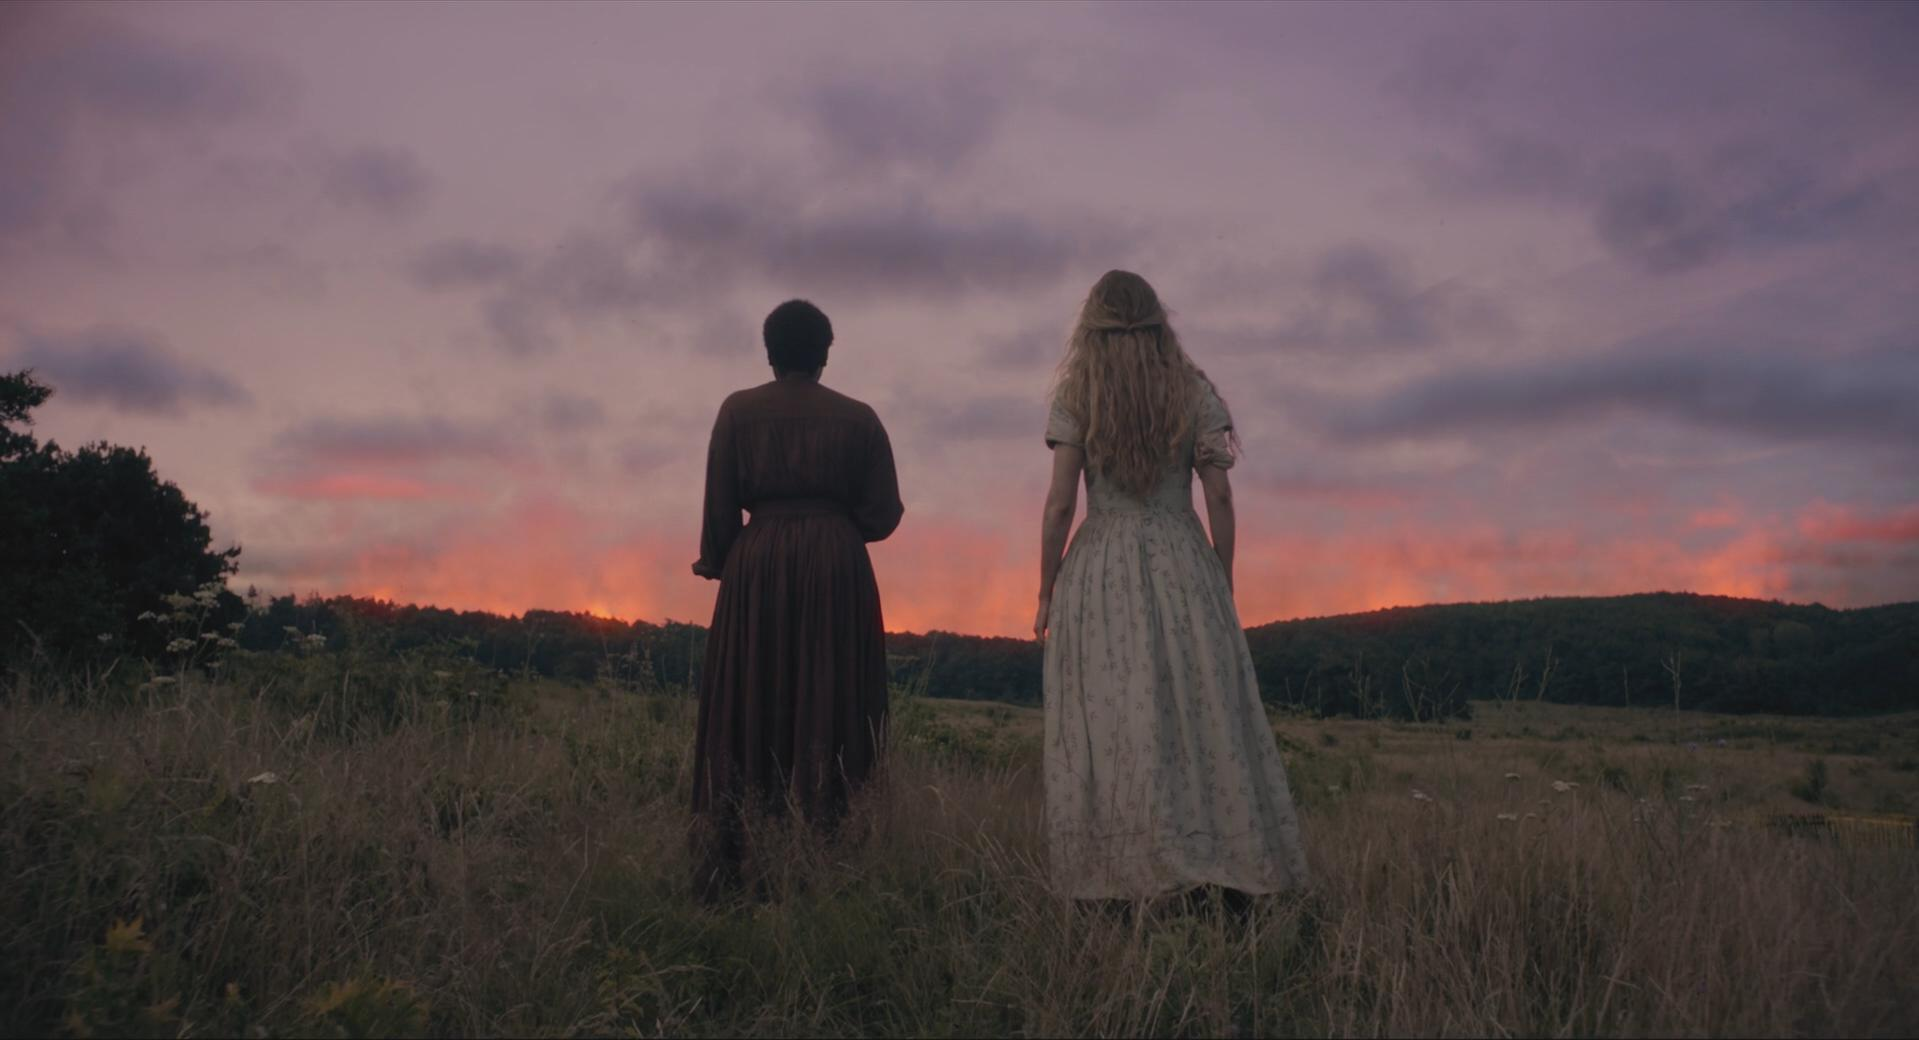 Brit Marling and Muna Otaru in The Keeping Room (2014)